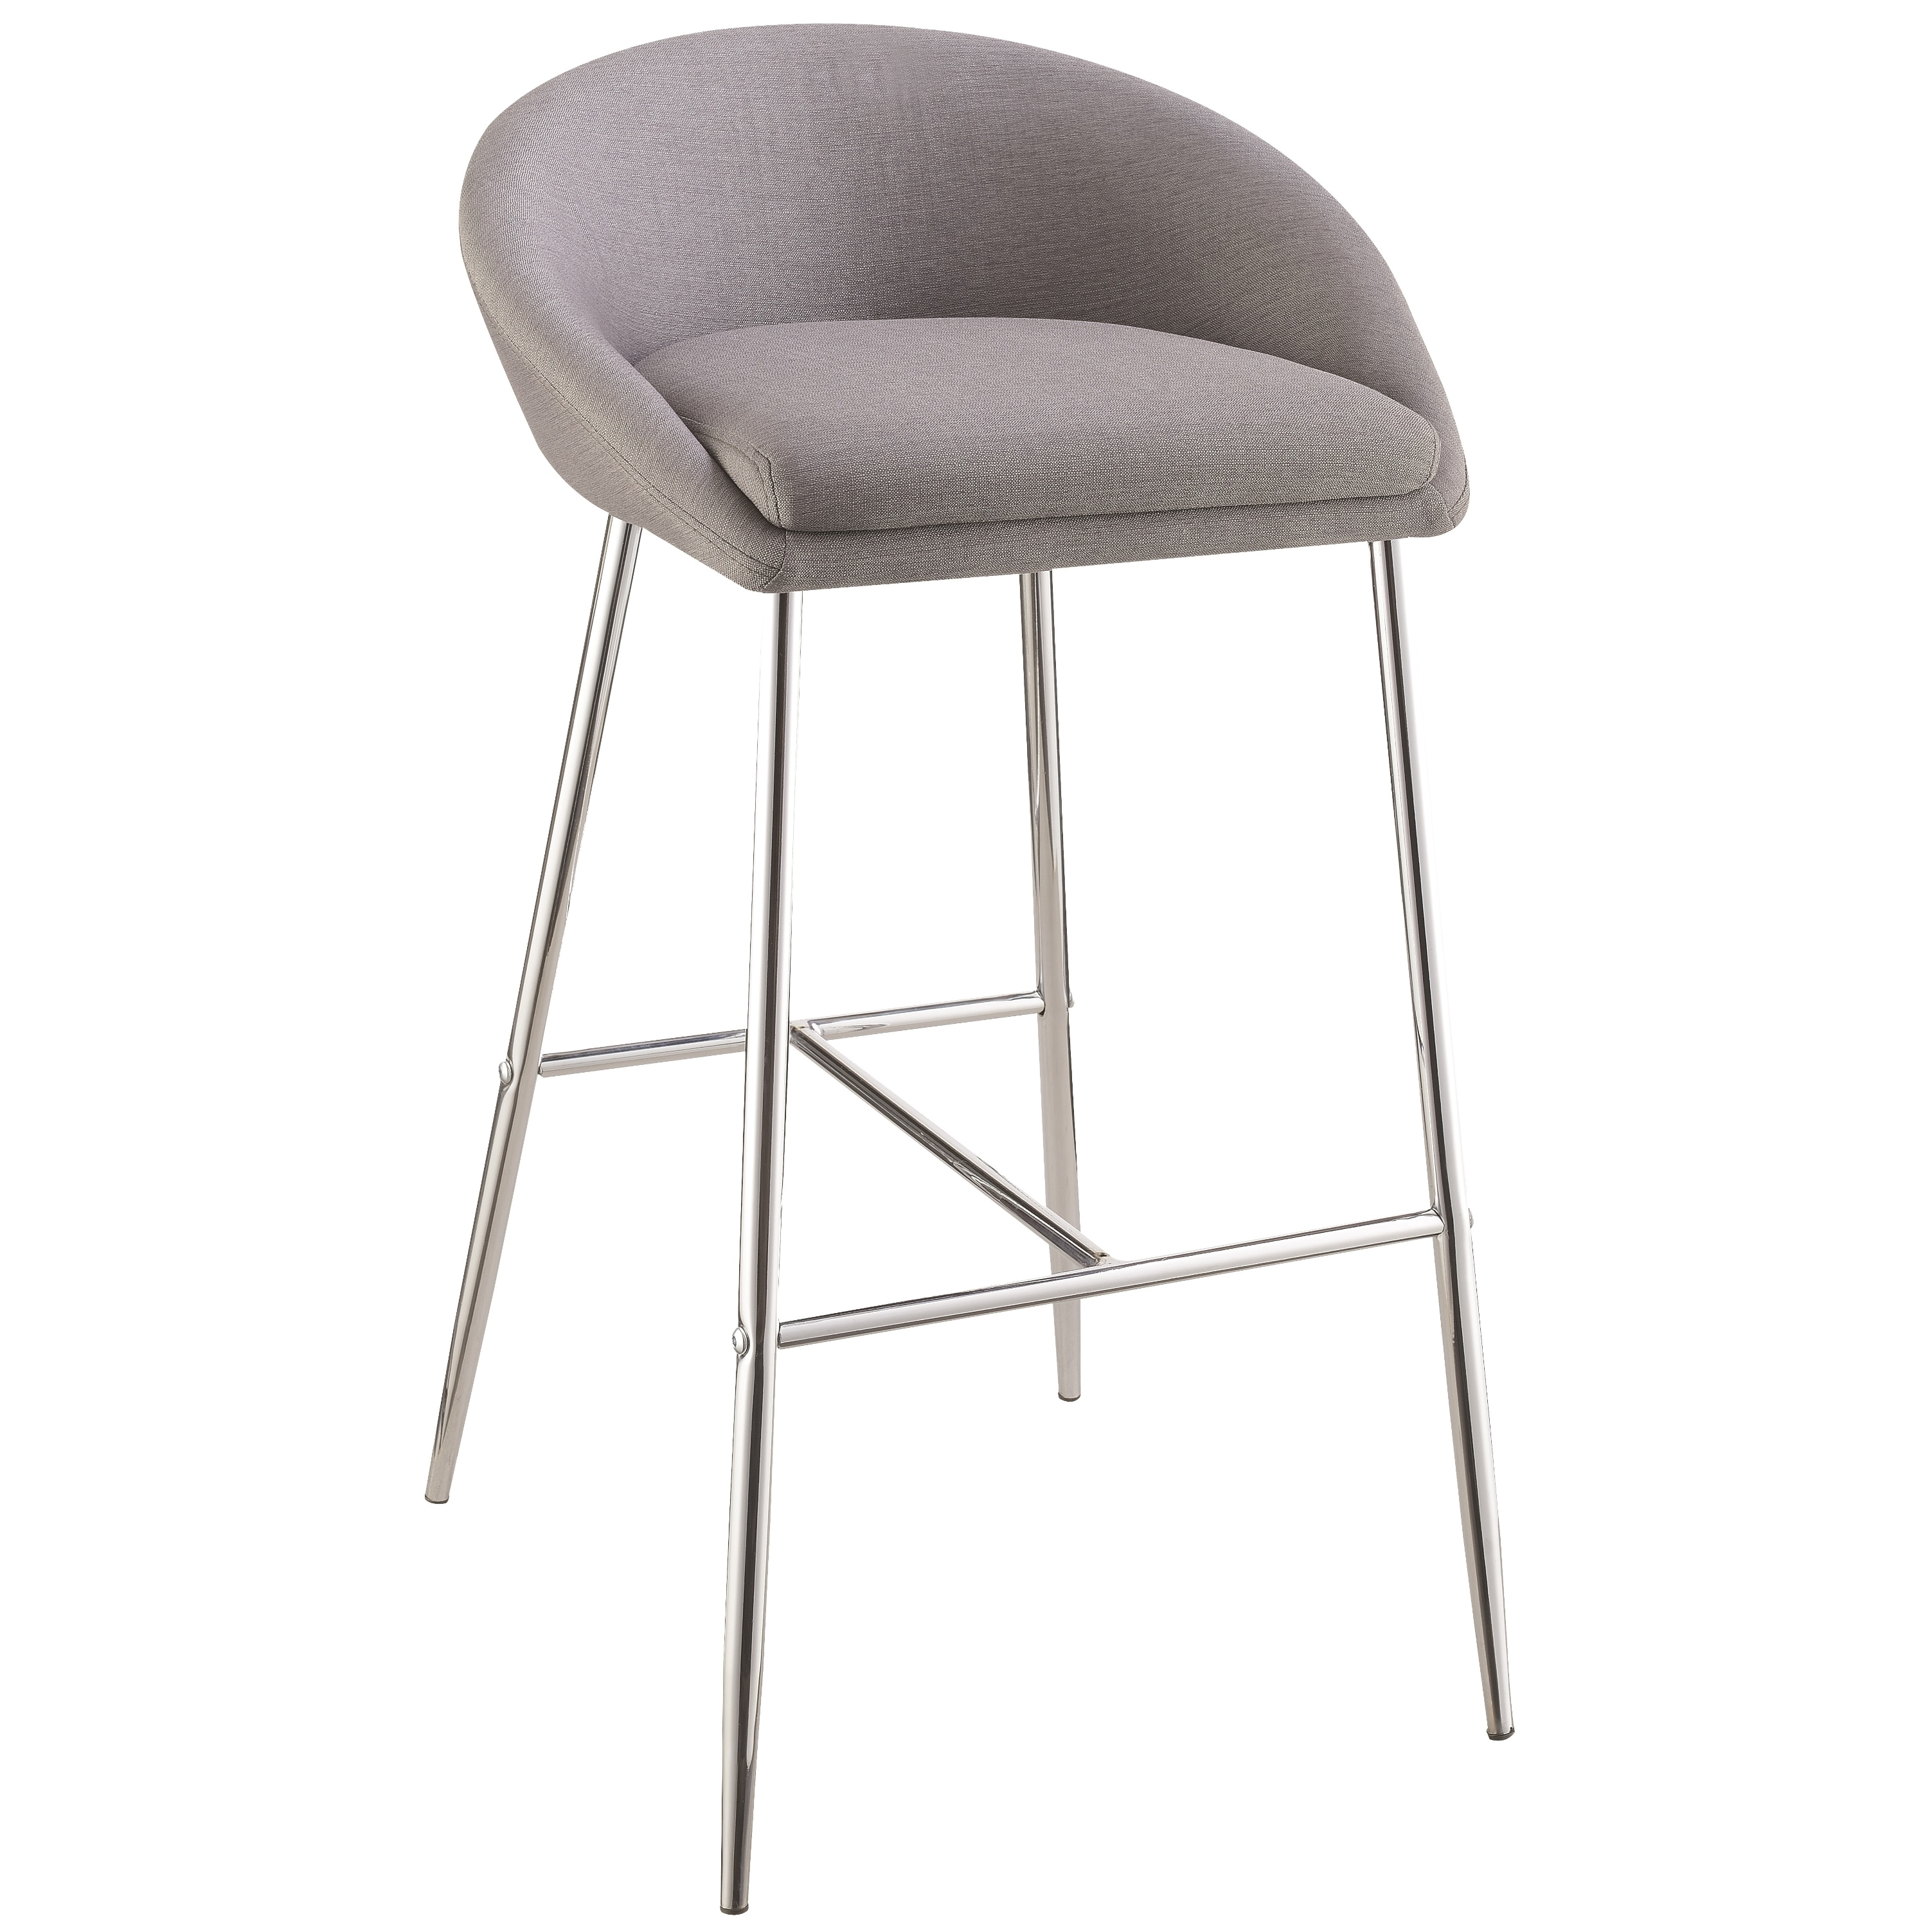 Modern Design Grey Woven Fabric Bar Stools With Sleek Chrome Base (Set Of  2)   Free Shipping Today   Overstock.com   23277928 Images